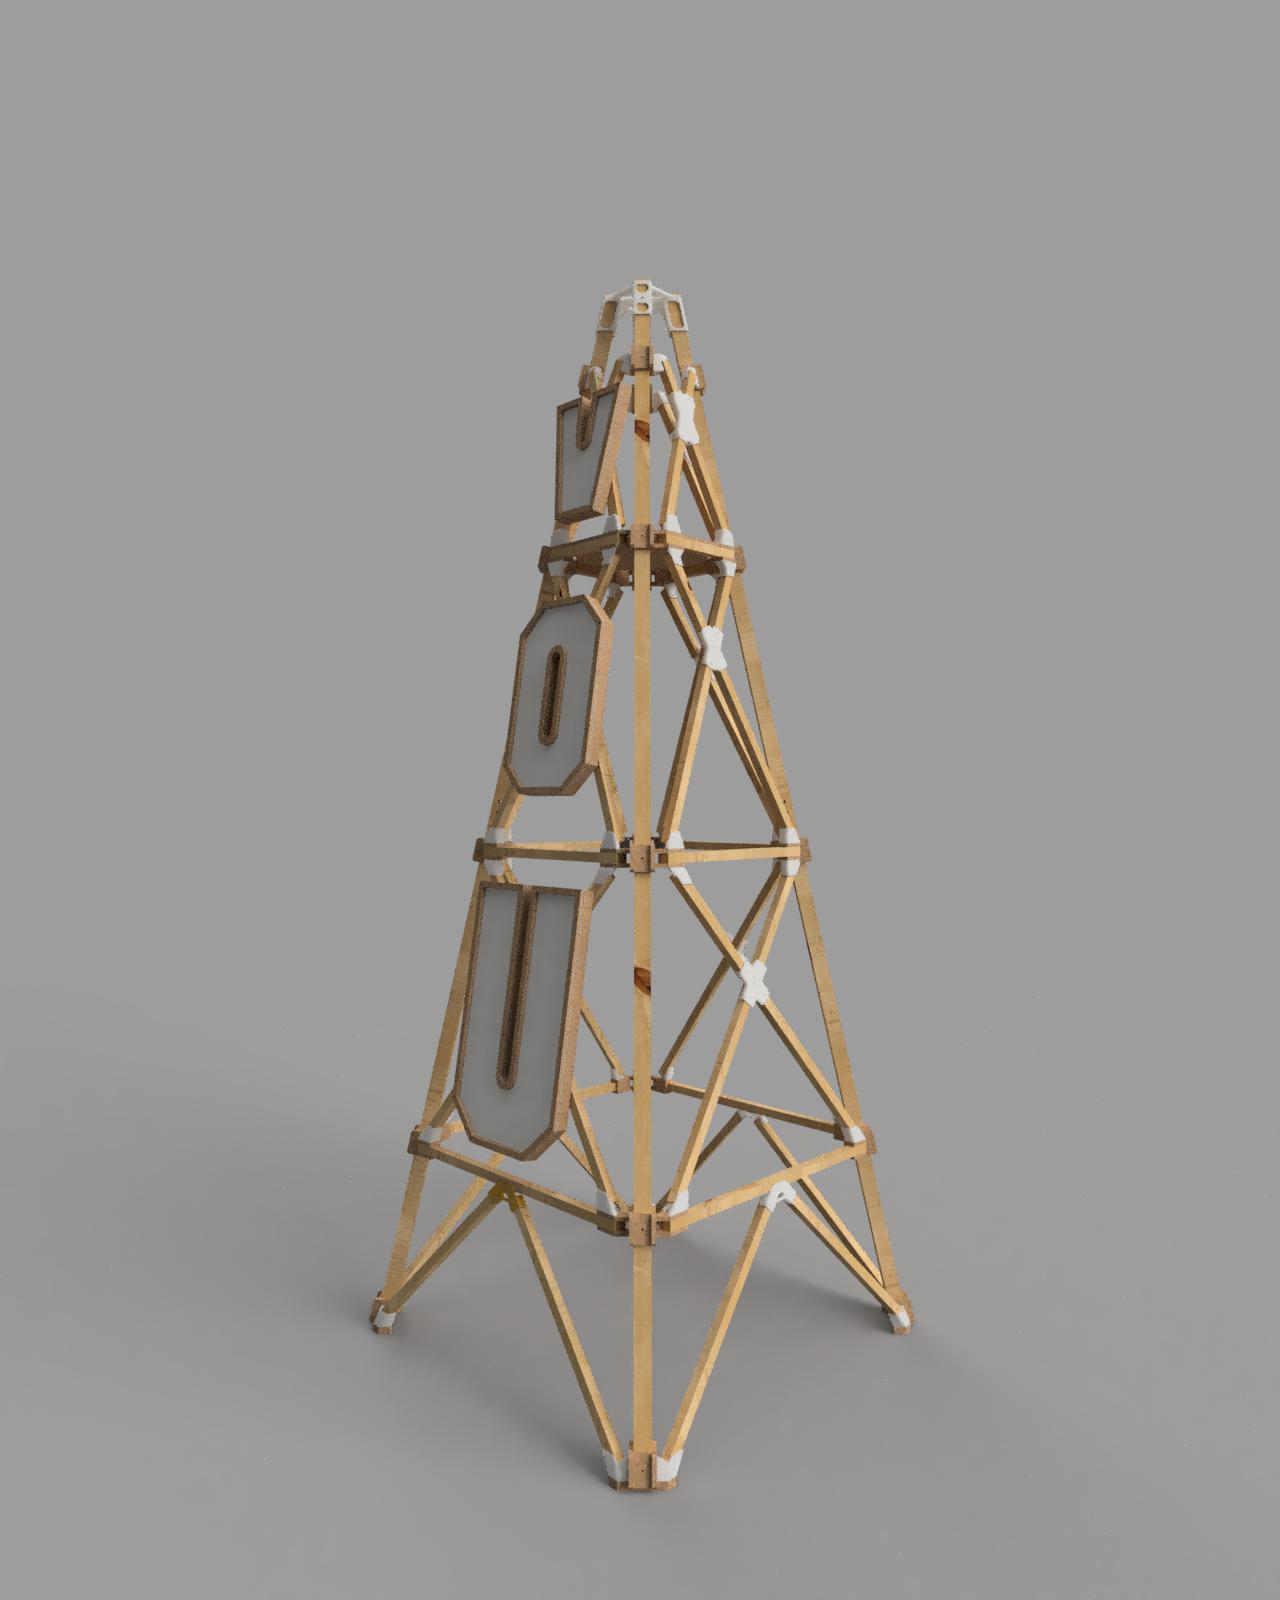 A render image of the tower design.